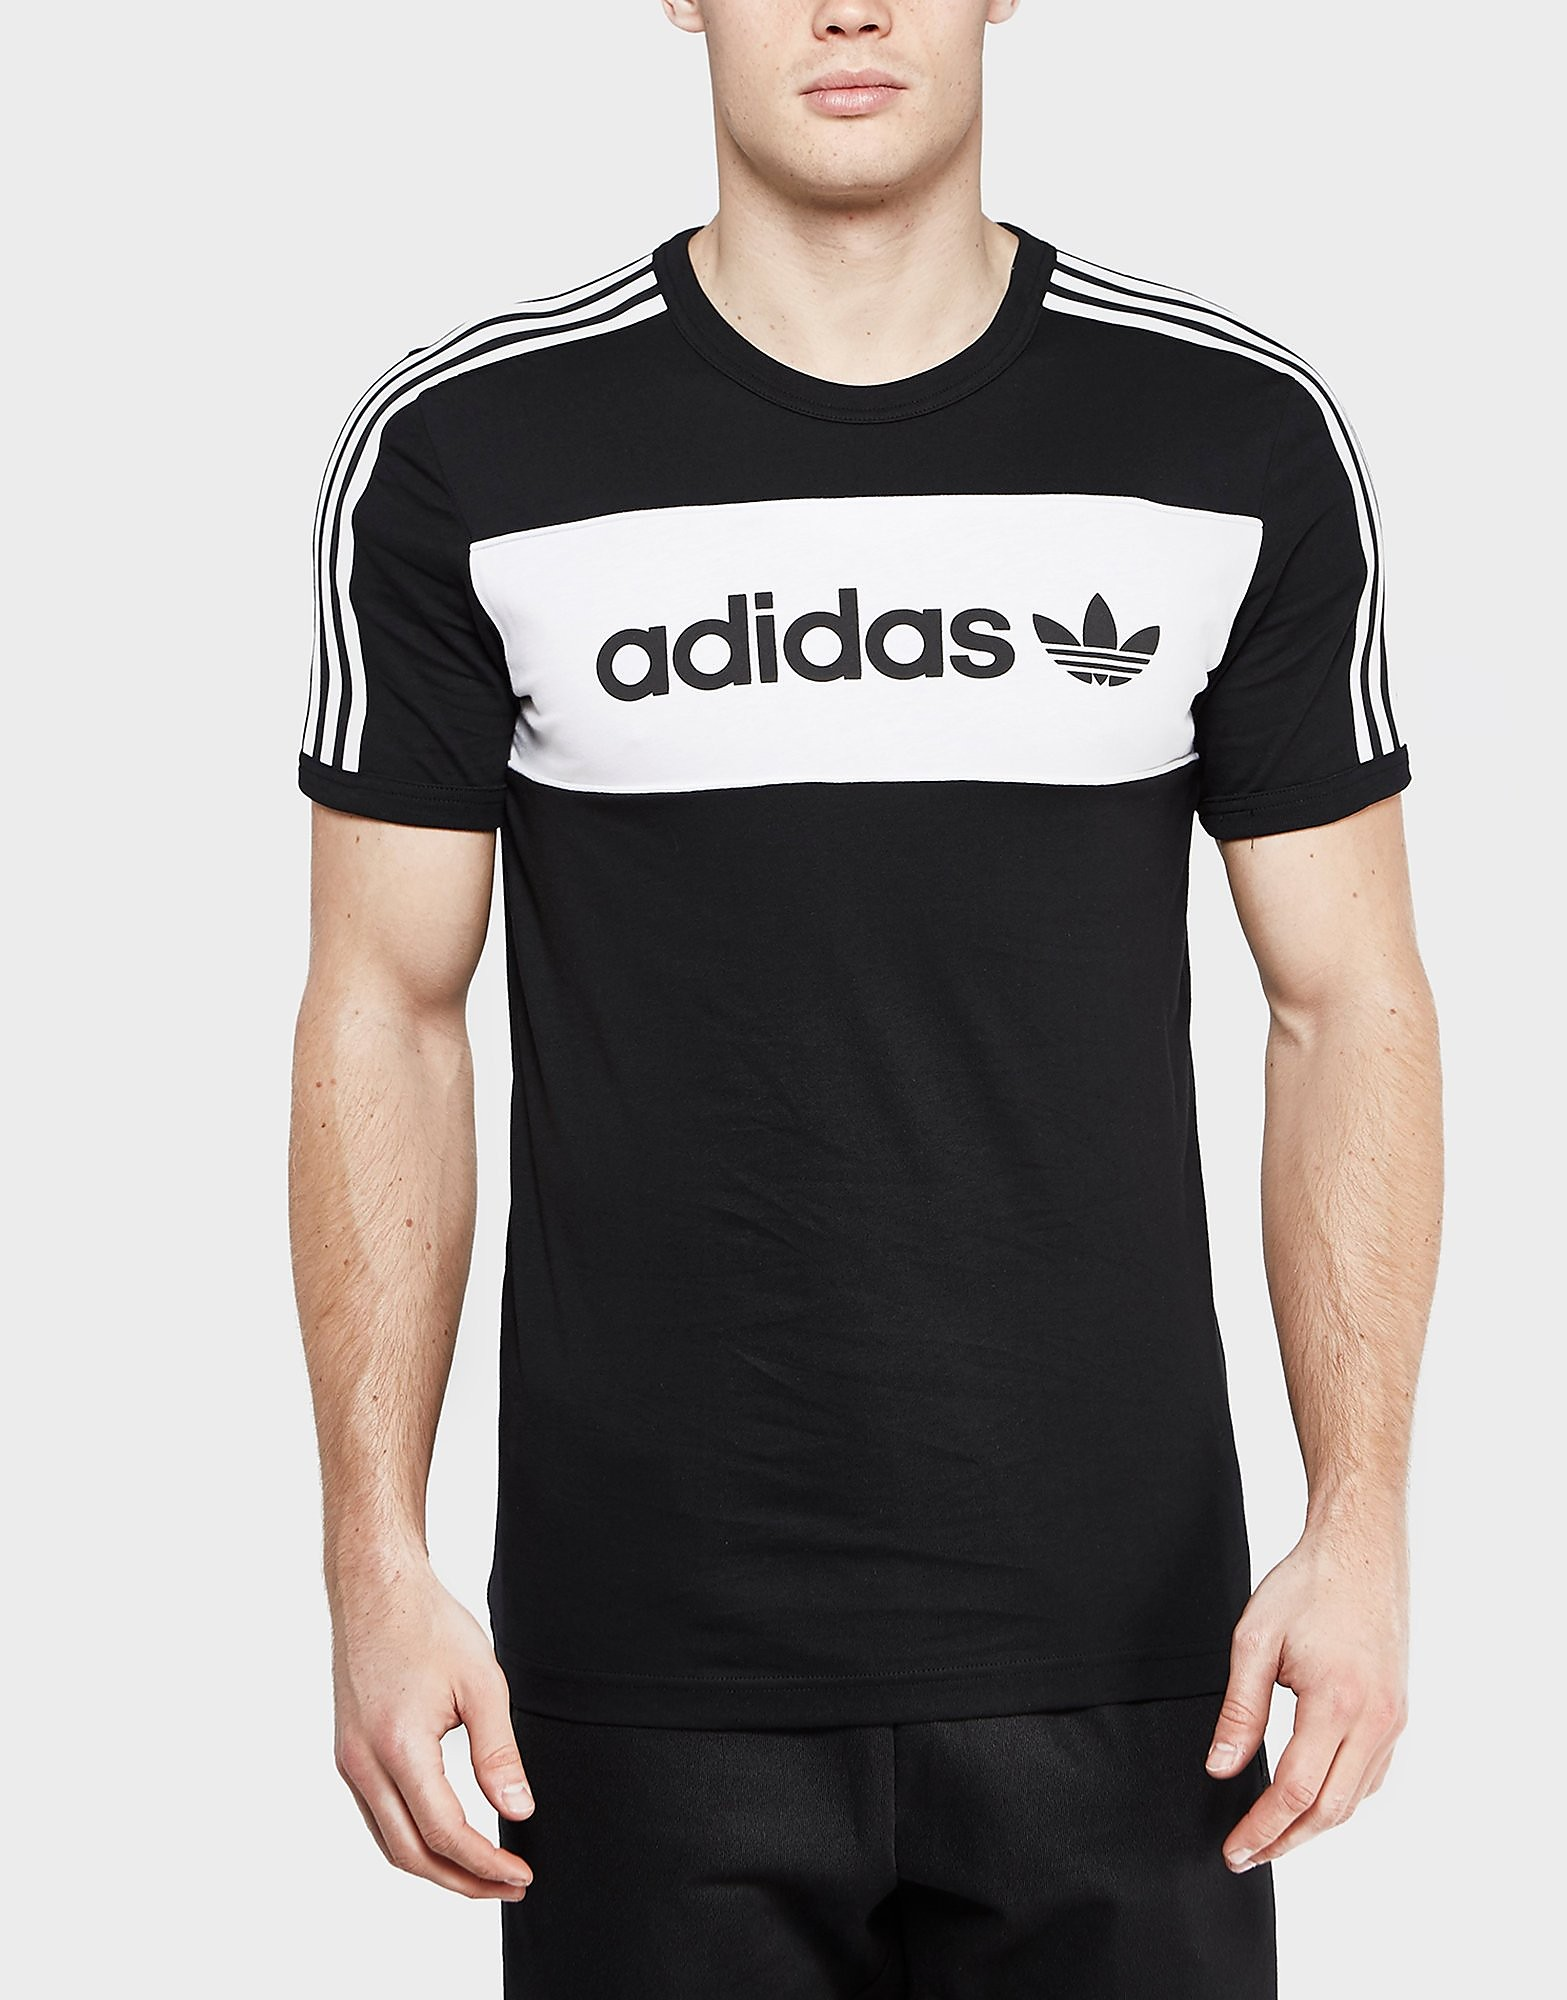 adidas Originals London T-Shirt